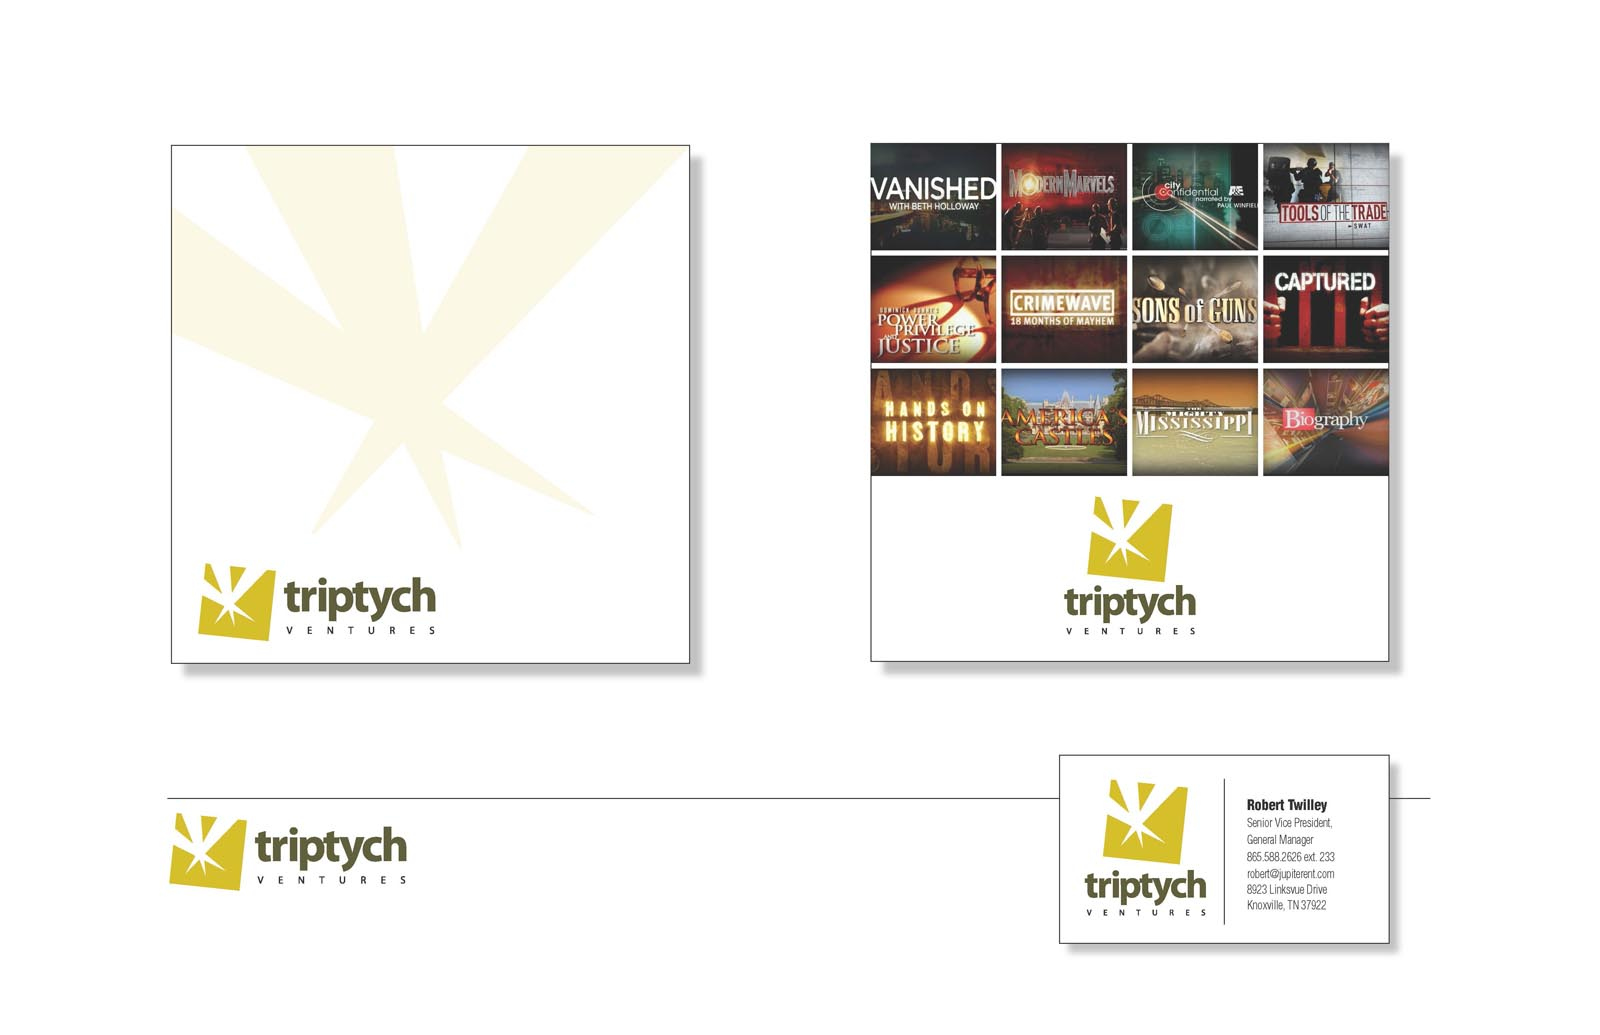 Tryptych Ventures